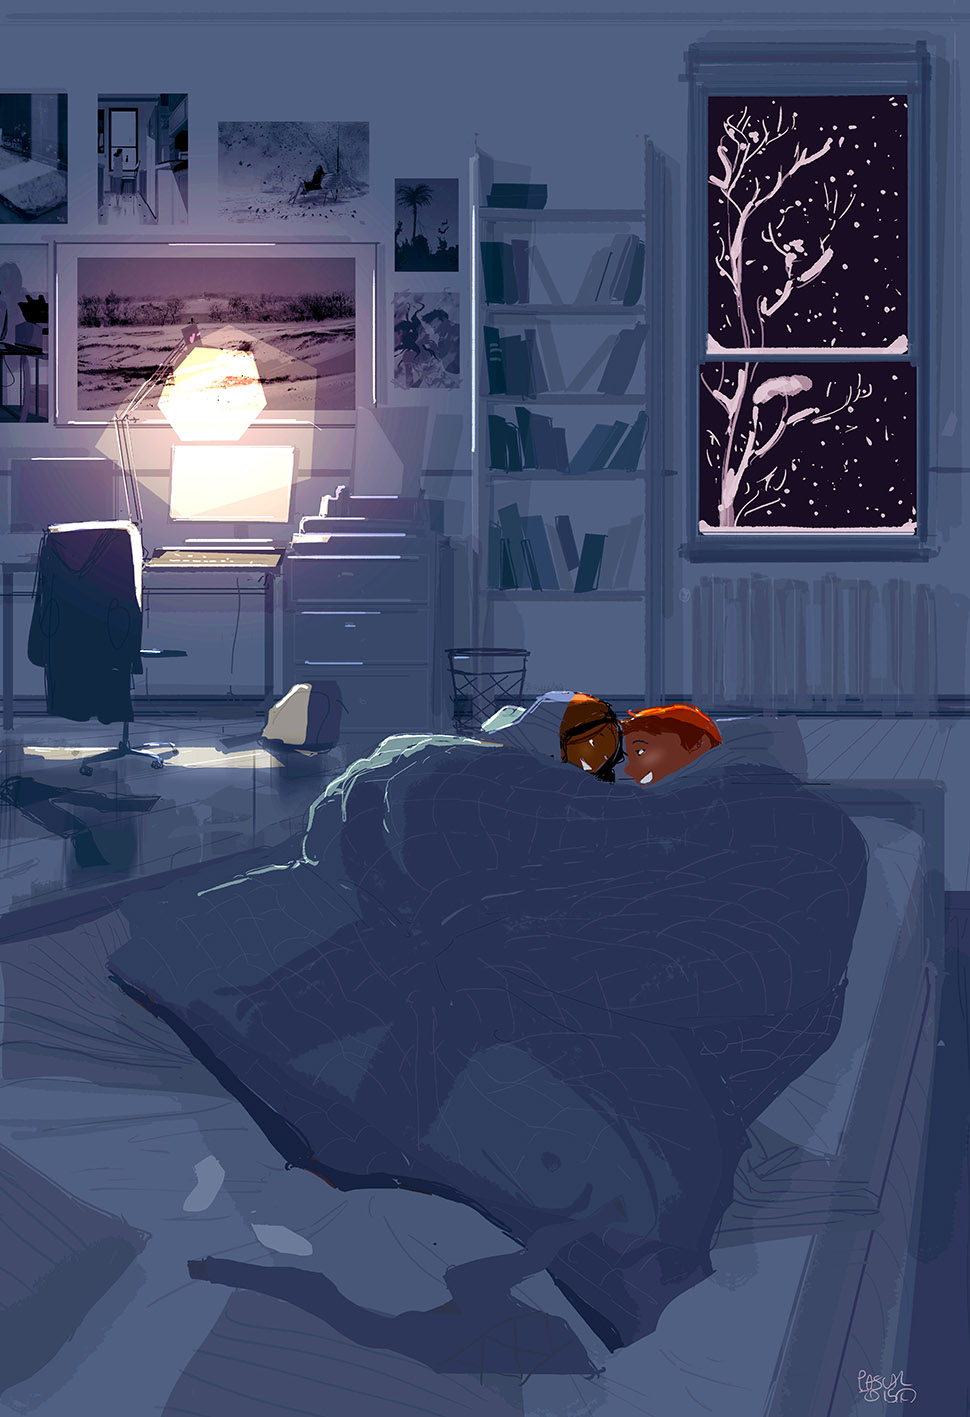 The best place to be on a snowy night by PascalCampion